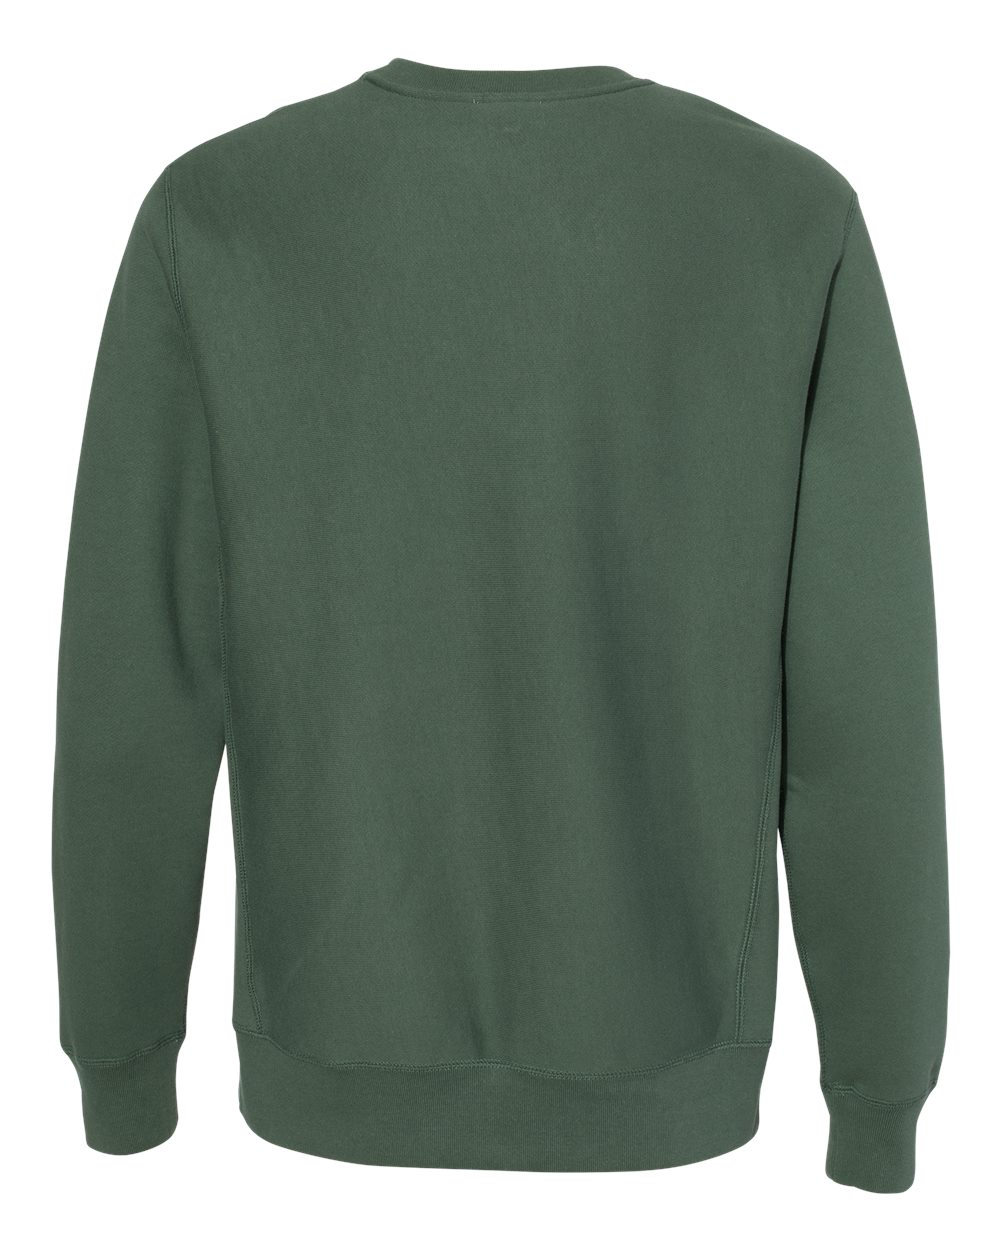 Independent-Trading-Co-Mens-Premium-Heavyweight-Cross-Grain-Sweatshirt-IND5000C thumbnail 7